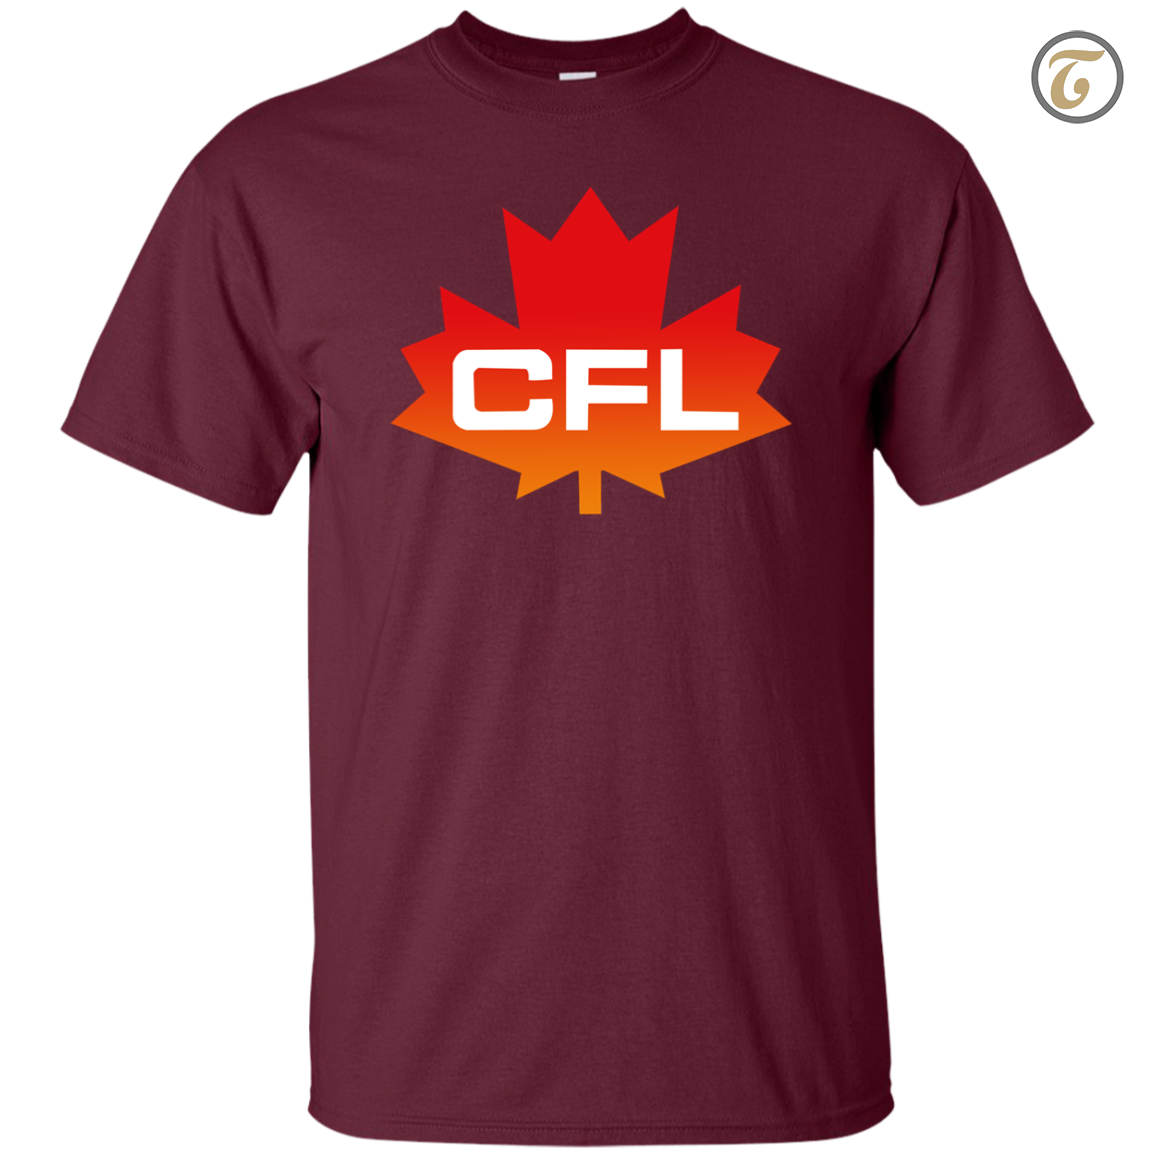 Cfl  logo  canadian  football  league  men s t shirt   maroon